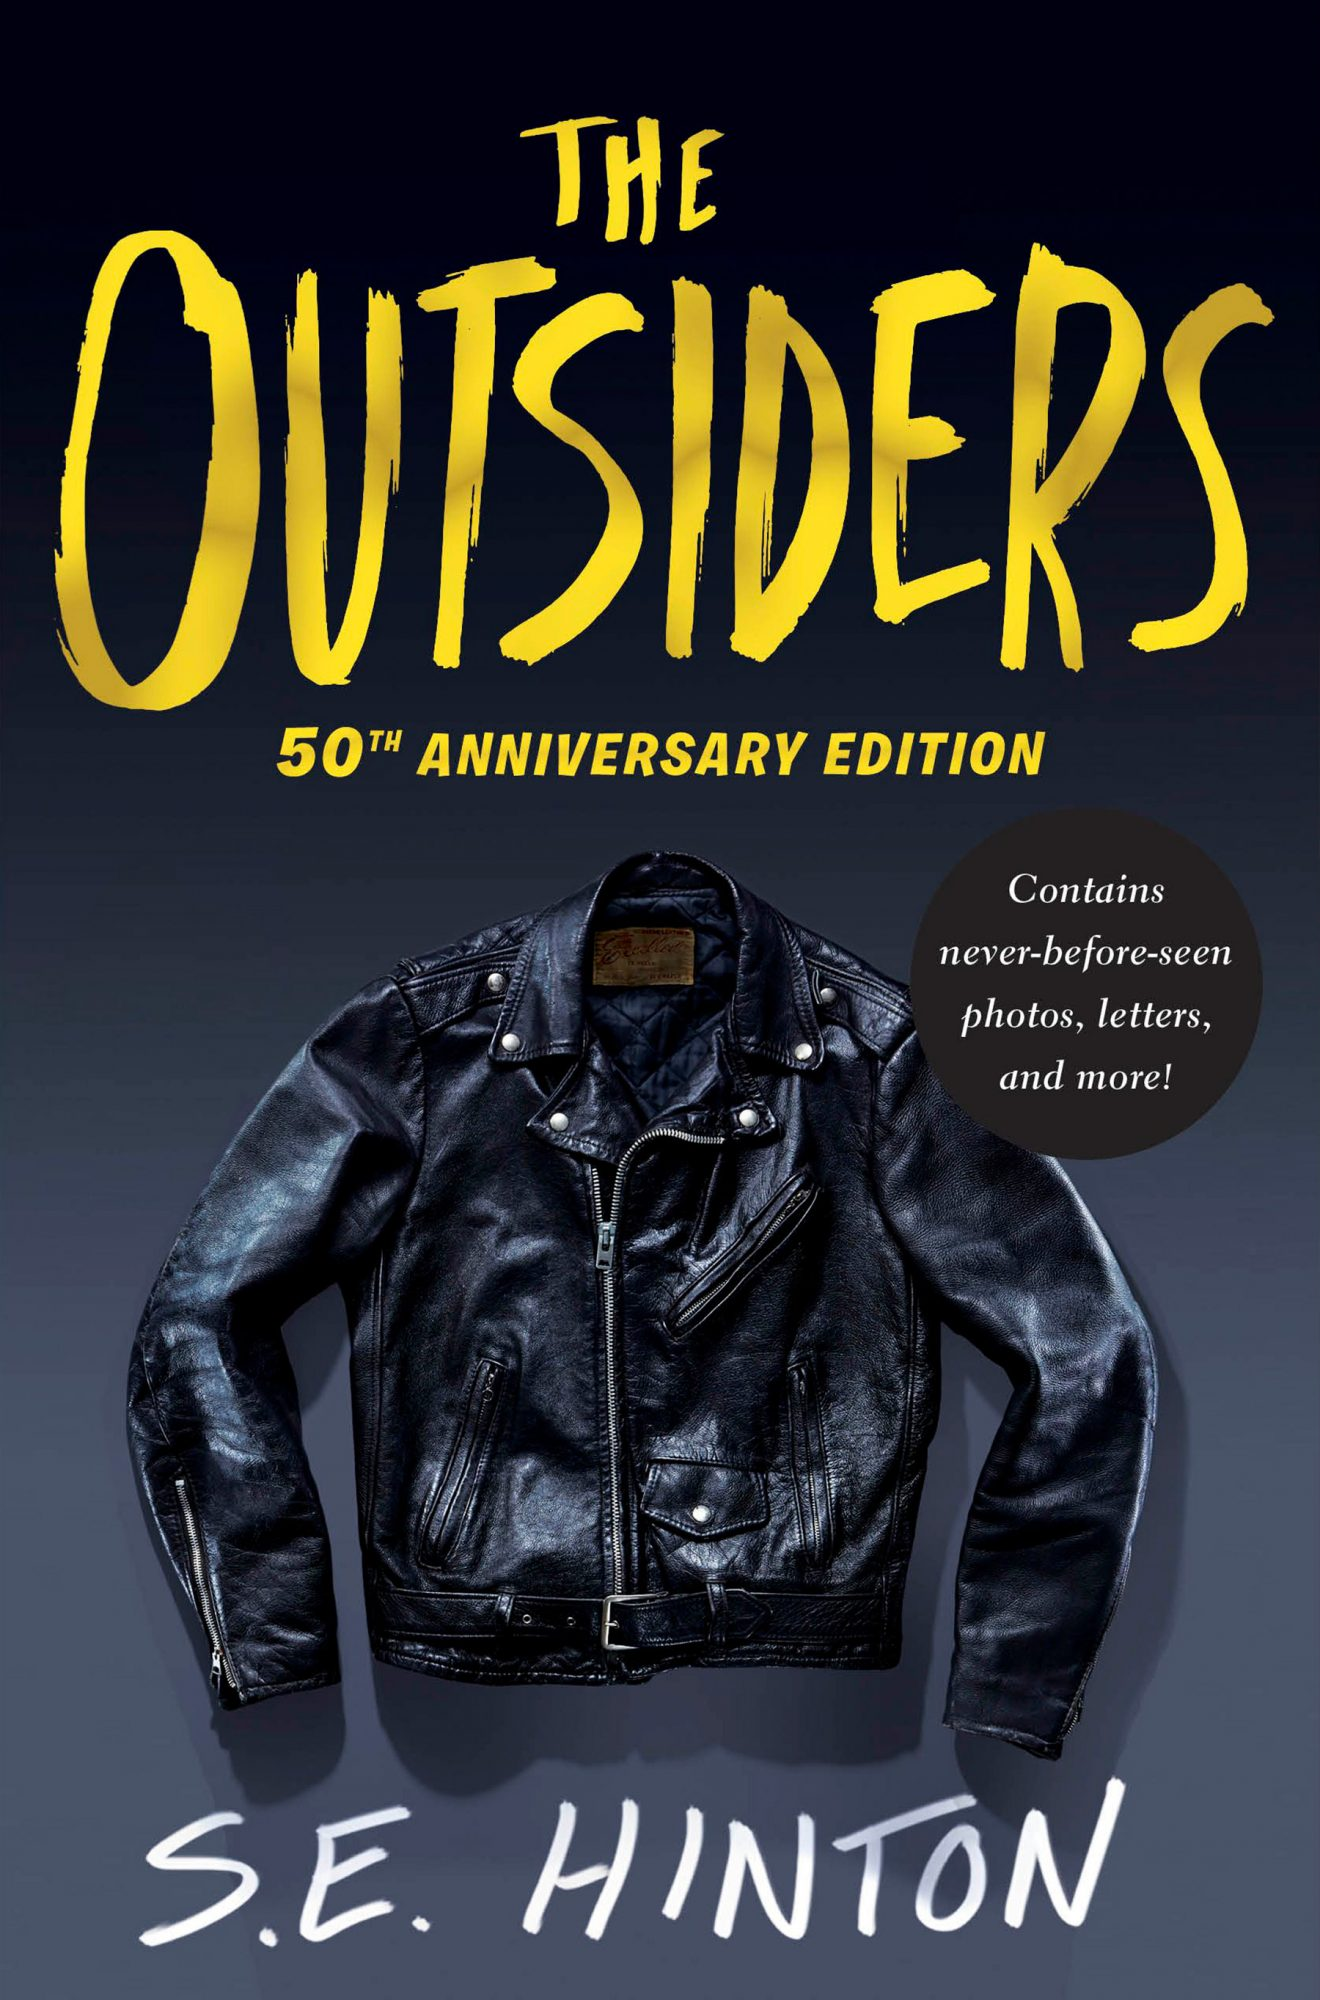 The Outsiders (Nov 01, 2016)(50th Anniversary Edition)by S.E. Hinton